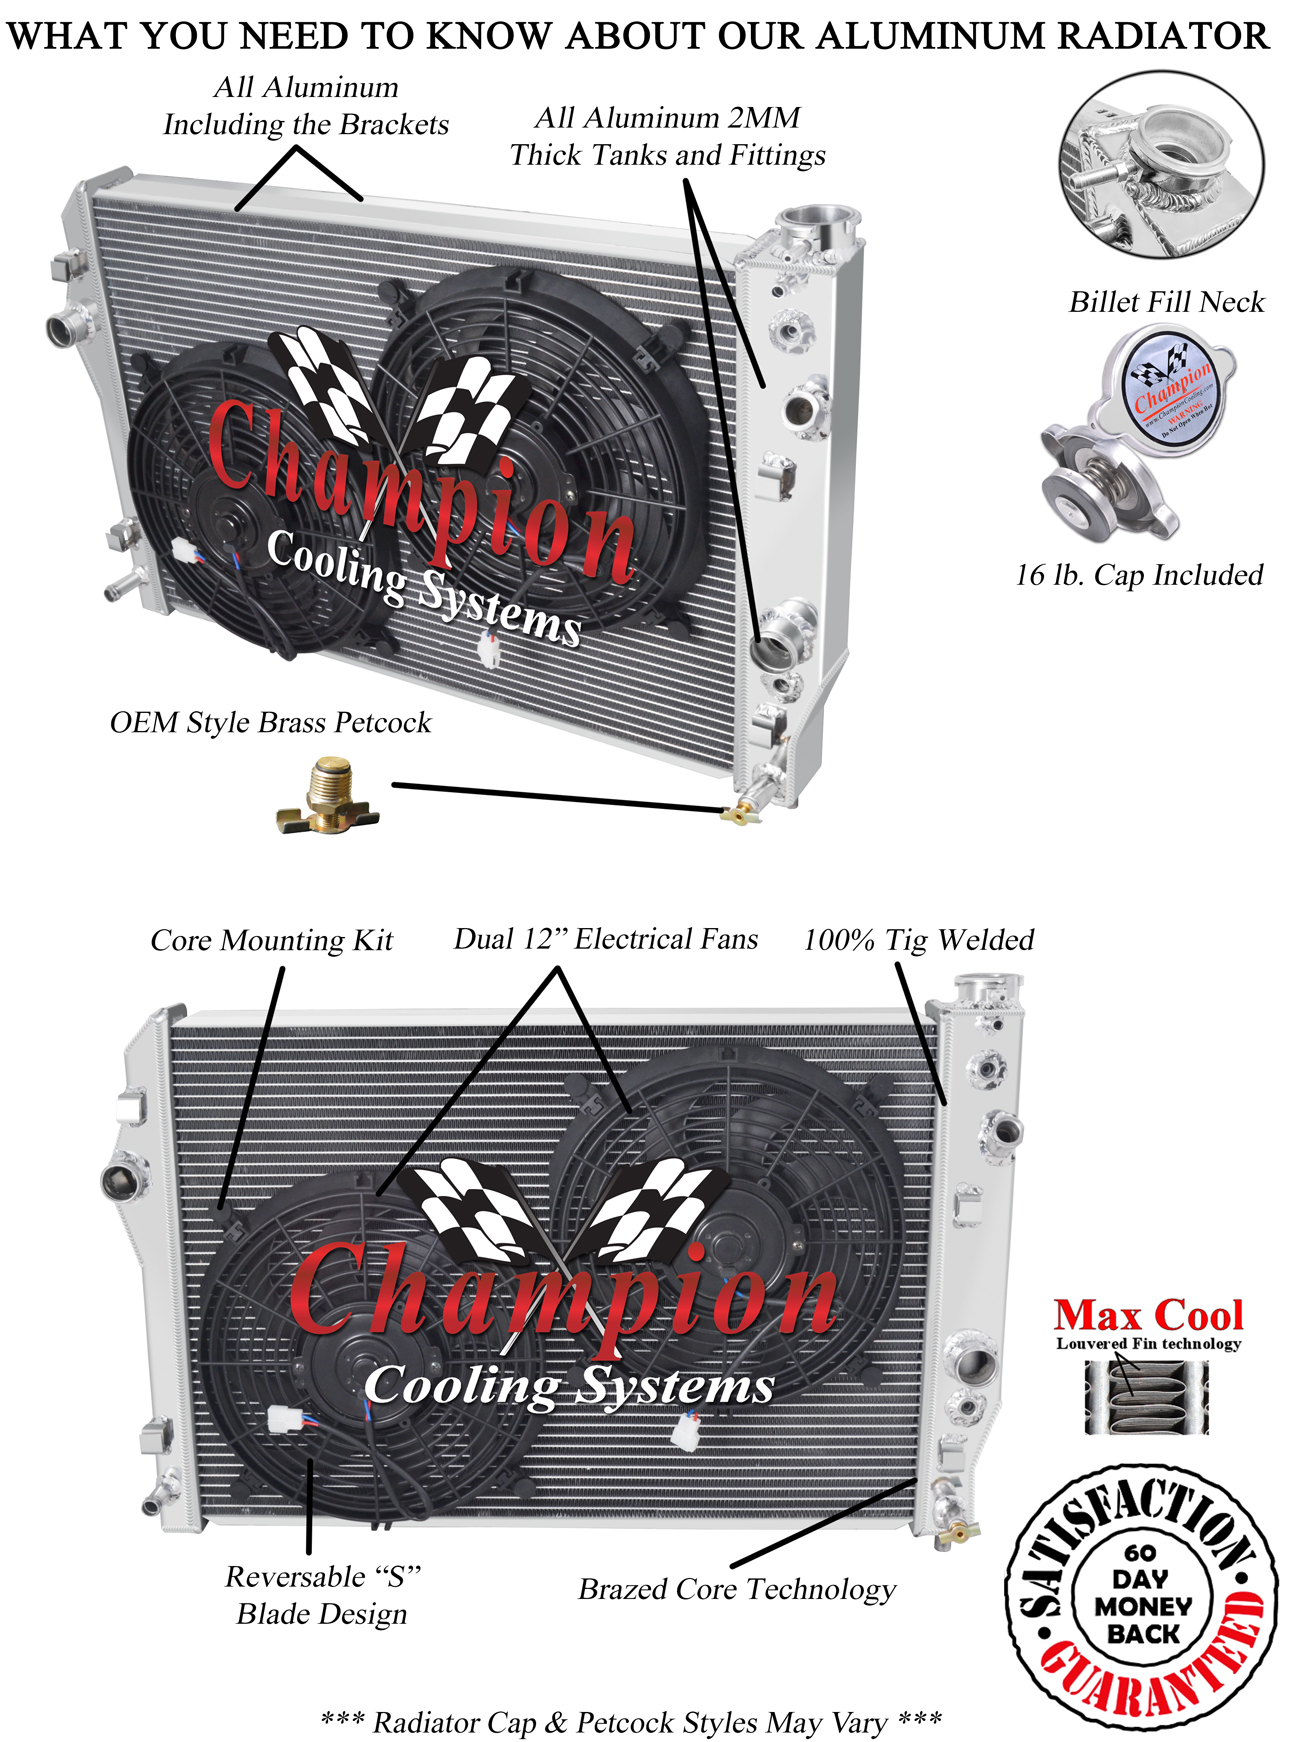 https://www.championcooling.com/photos/Photos%20White/With%20Fans/Combos/2365/2x12/2365_2f_d_w.jpg